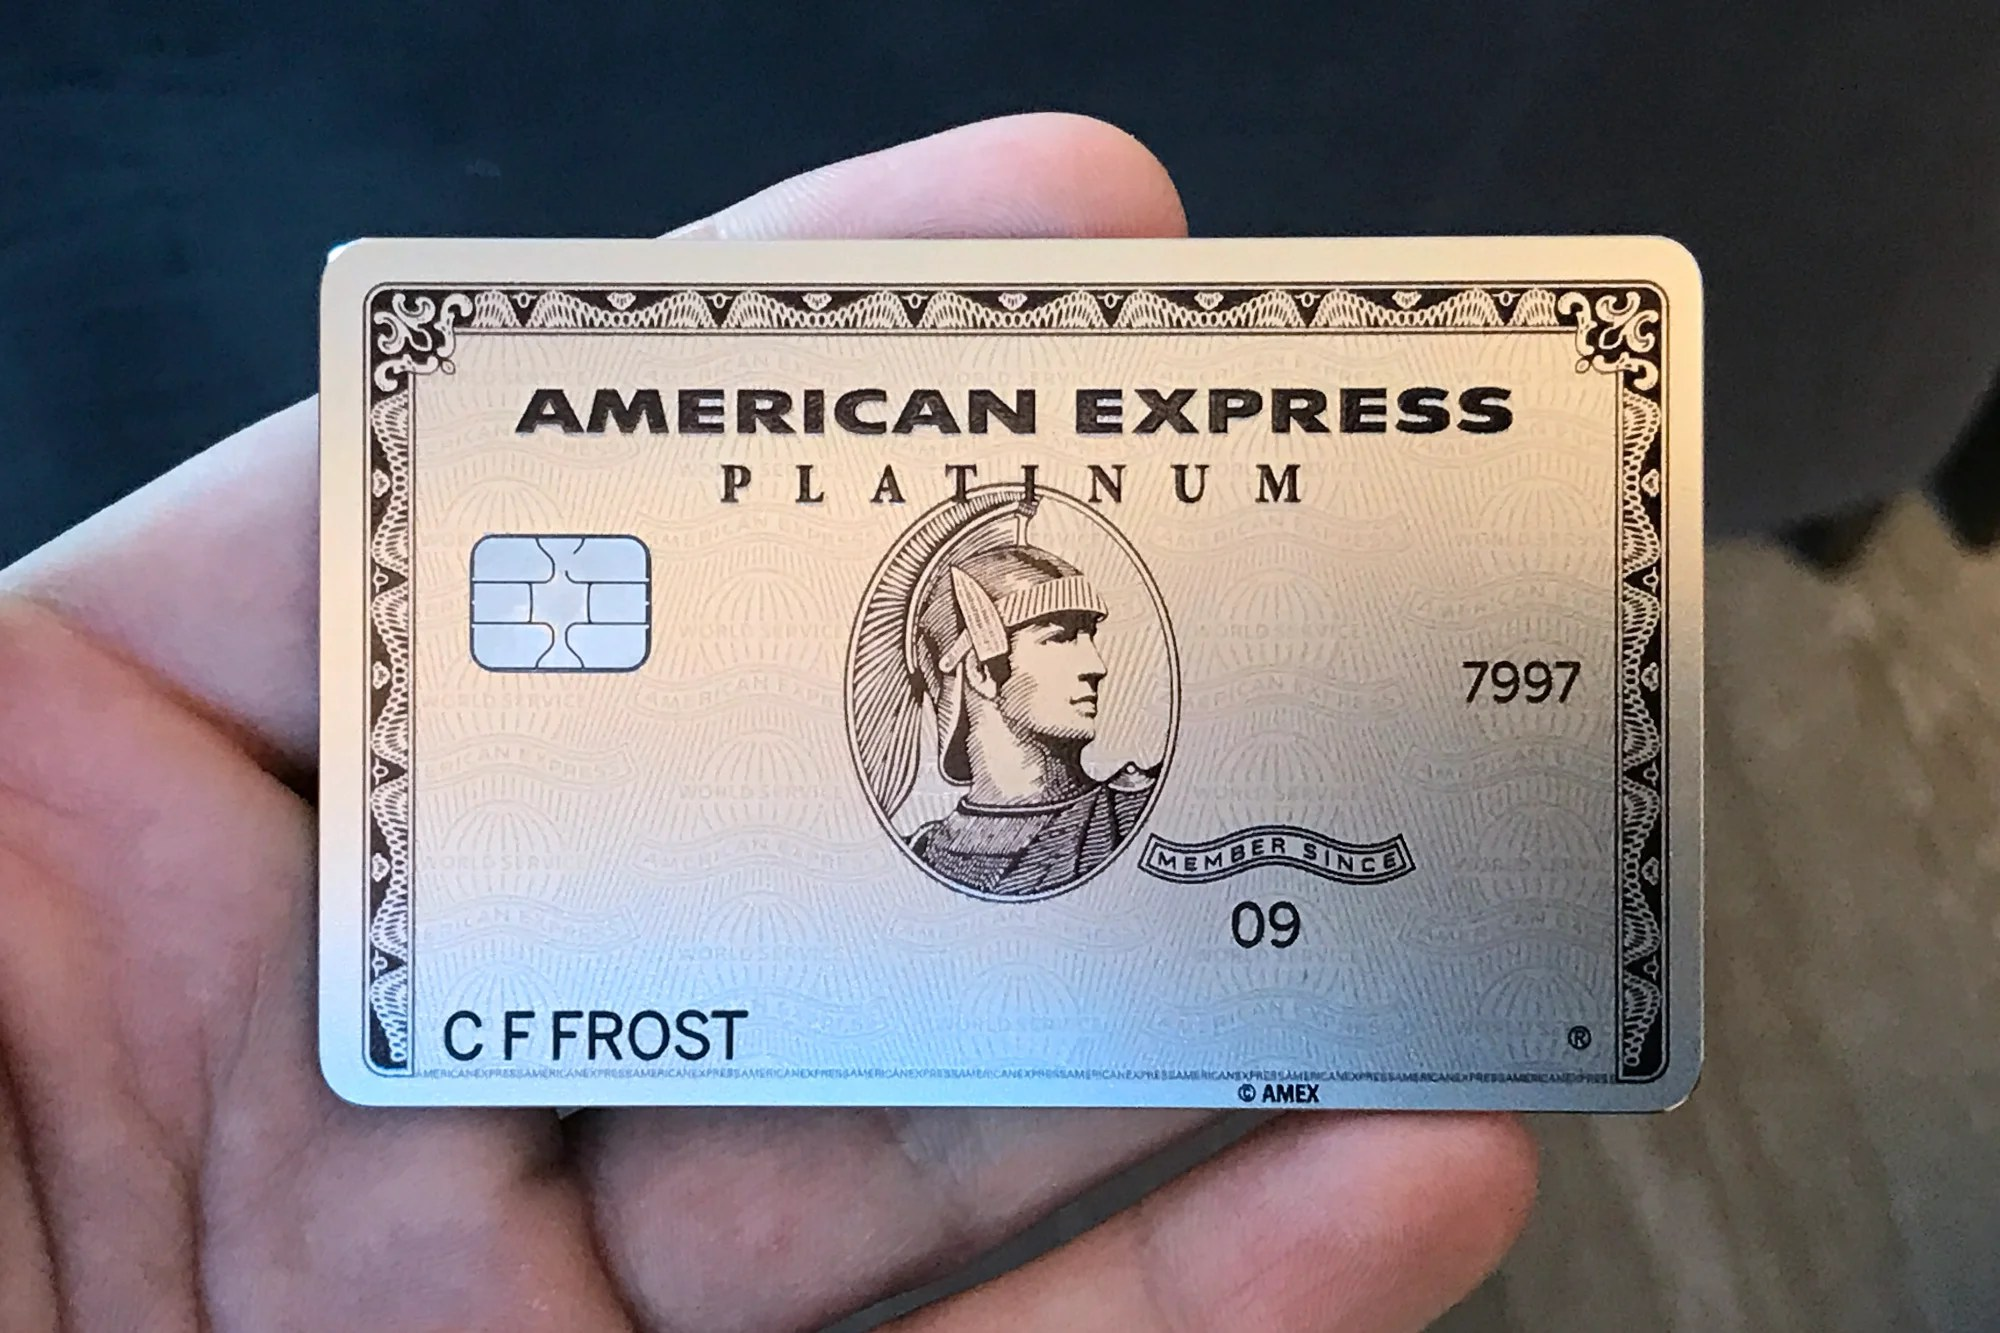 Which Airline Gift Cards Trigger the Amex Fee Credit?